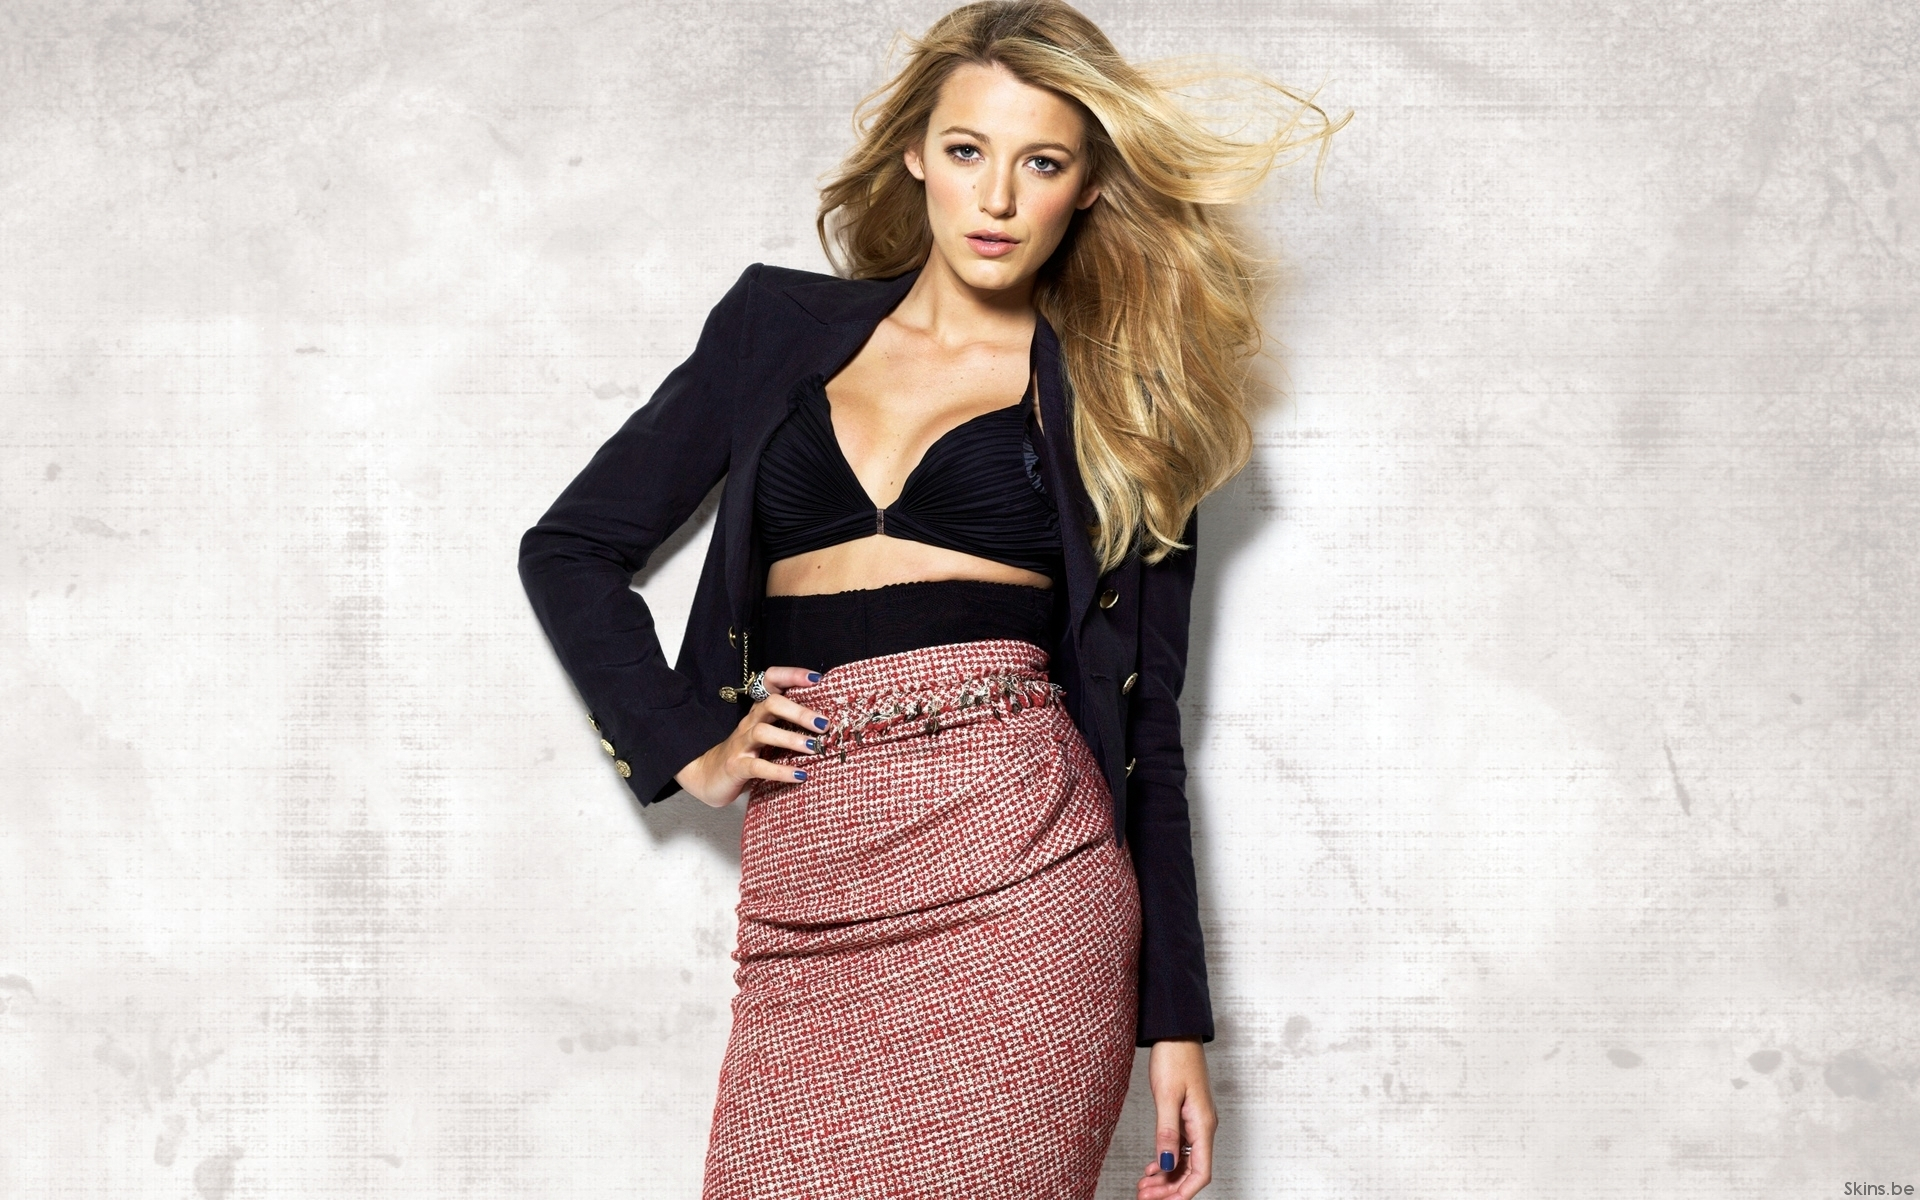 1920x1200 - Blake Lively Wallpapers 8